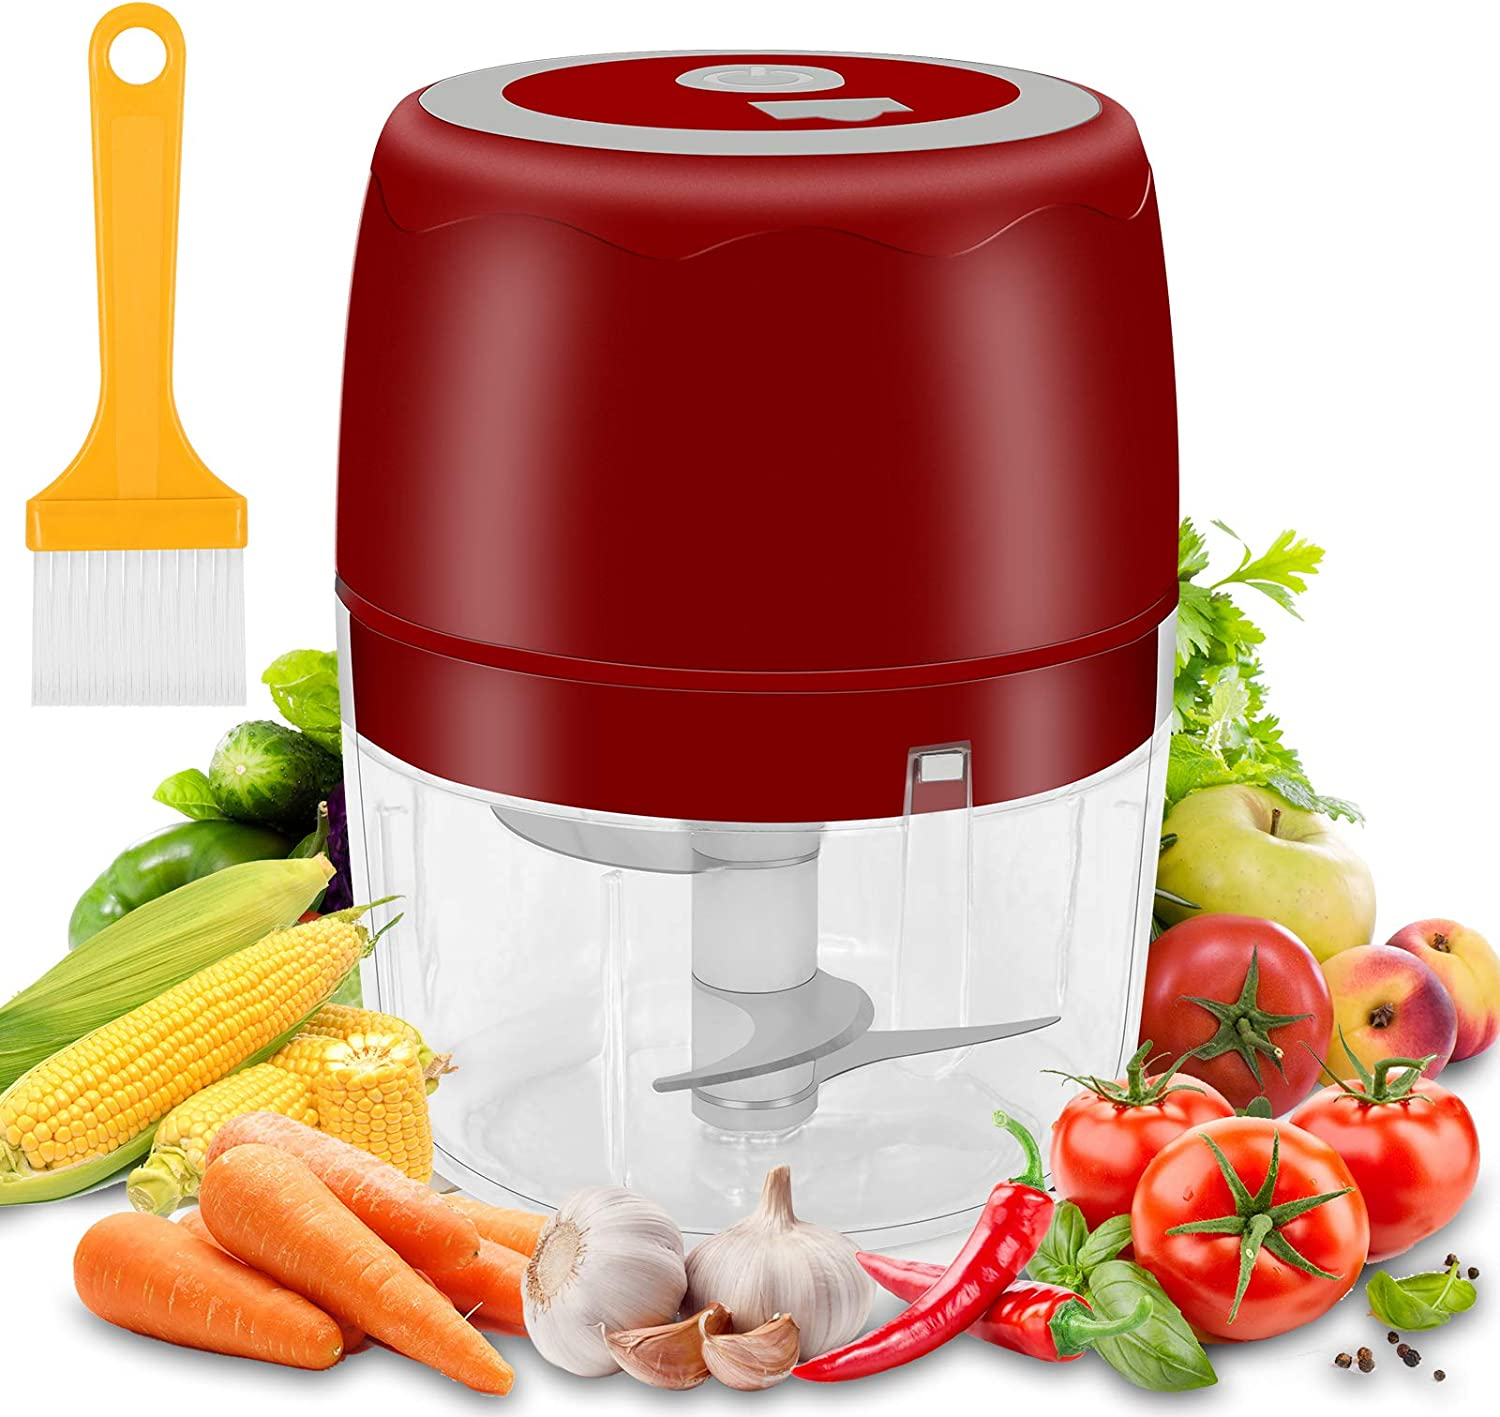 moleath Electric Mini Food Chopper, 400ML Wireless Portable Garlic Grinder, Mincer Blender, Multifunctional Food Slicer Processor for Cutting Garlic,Fruits,Vegetables,Nuts, Meat,Baby Food (Red)